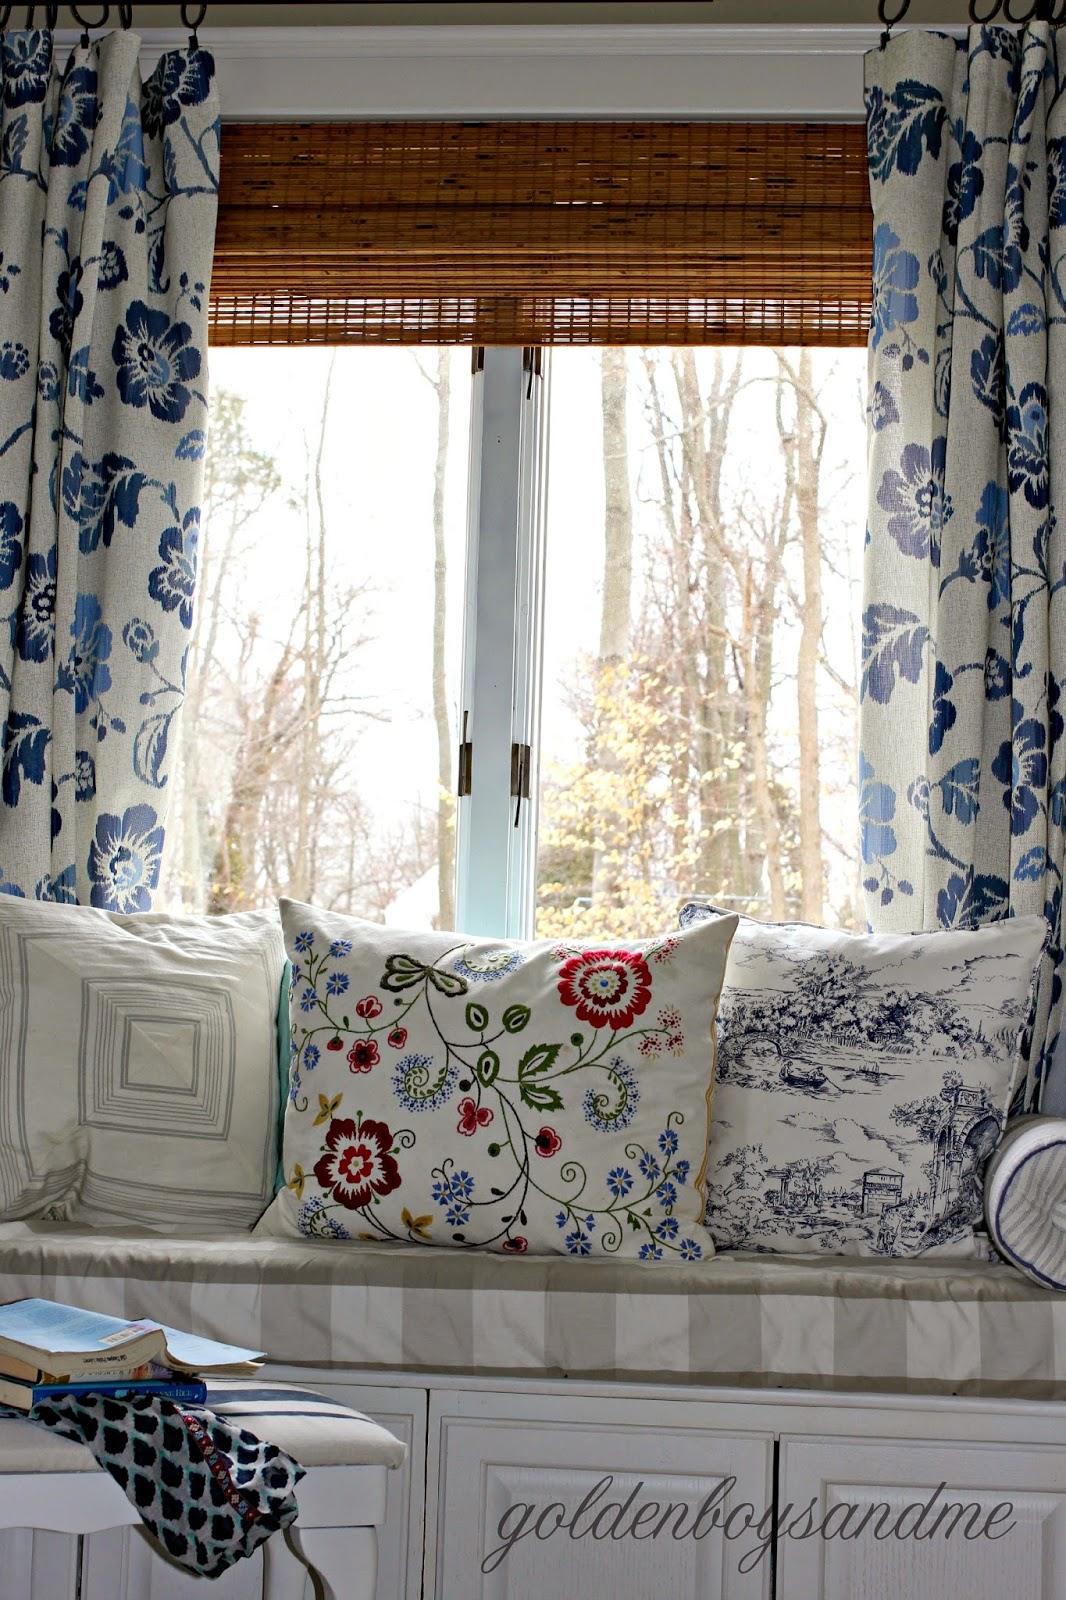 DIY master bedroom window seat made with upper kitchen cabinets-www.goldenboysandme.com